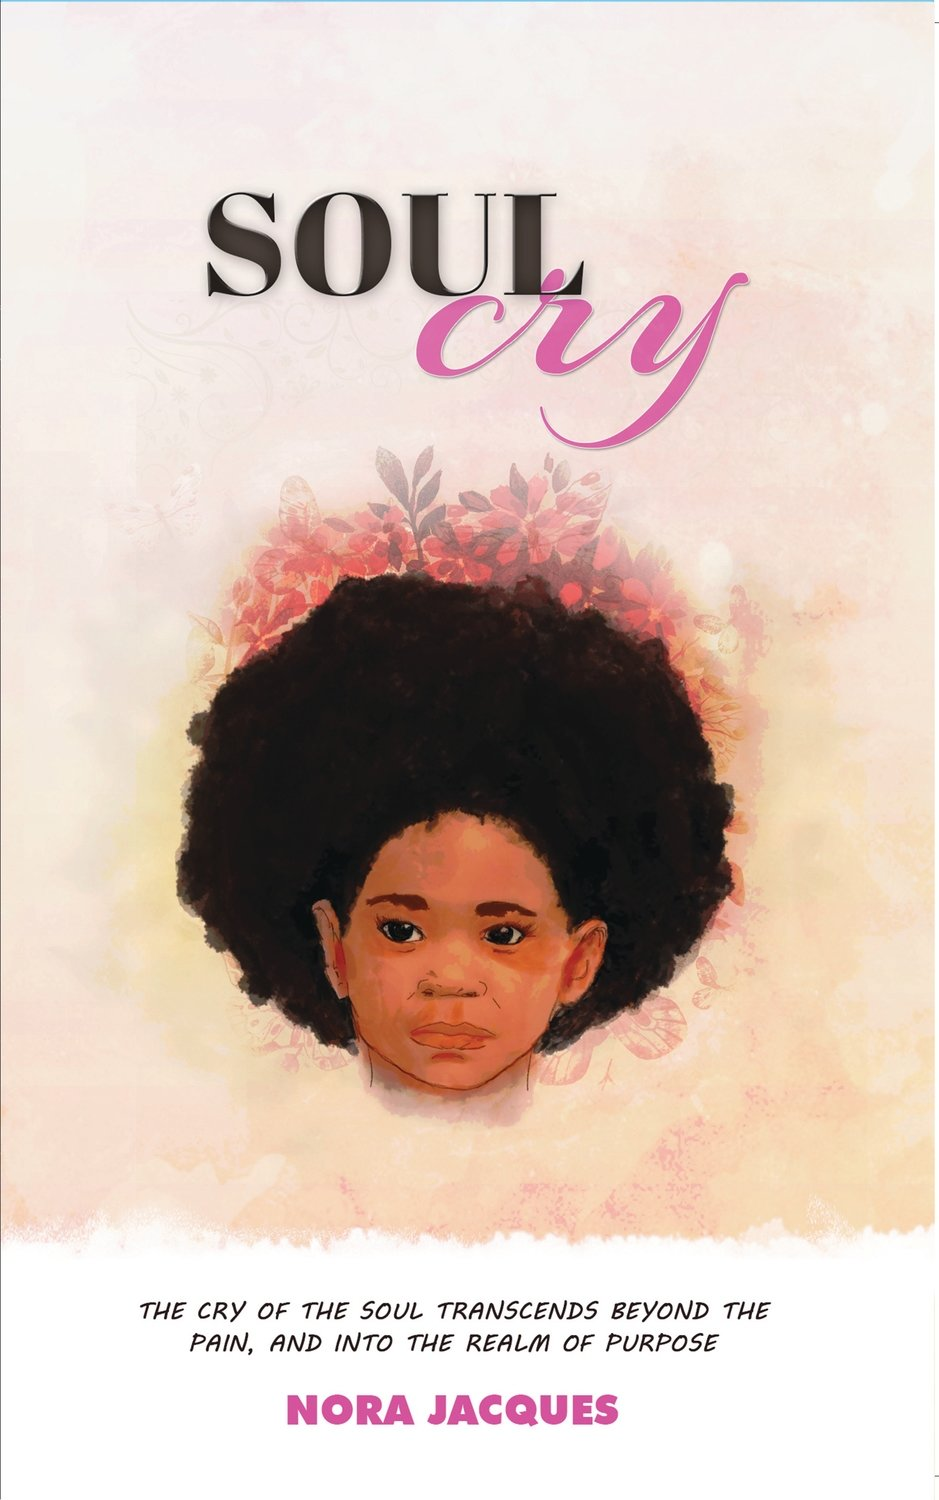 Soul Cry by Nora Jacques